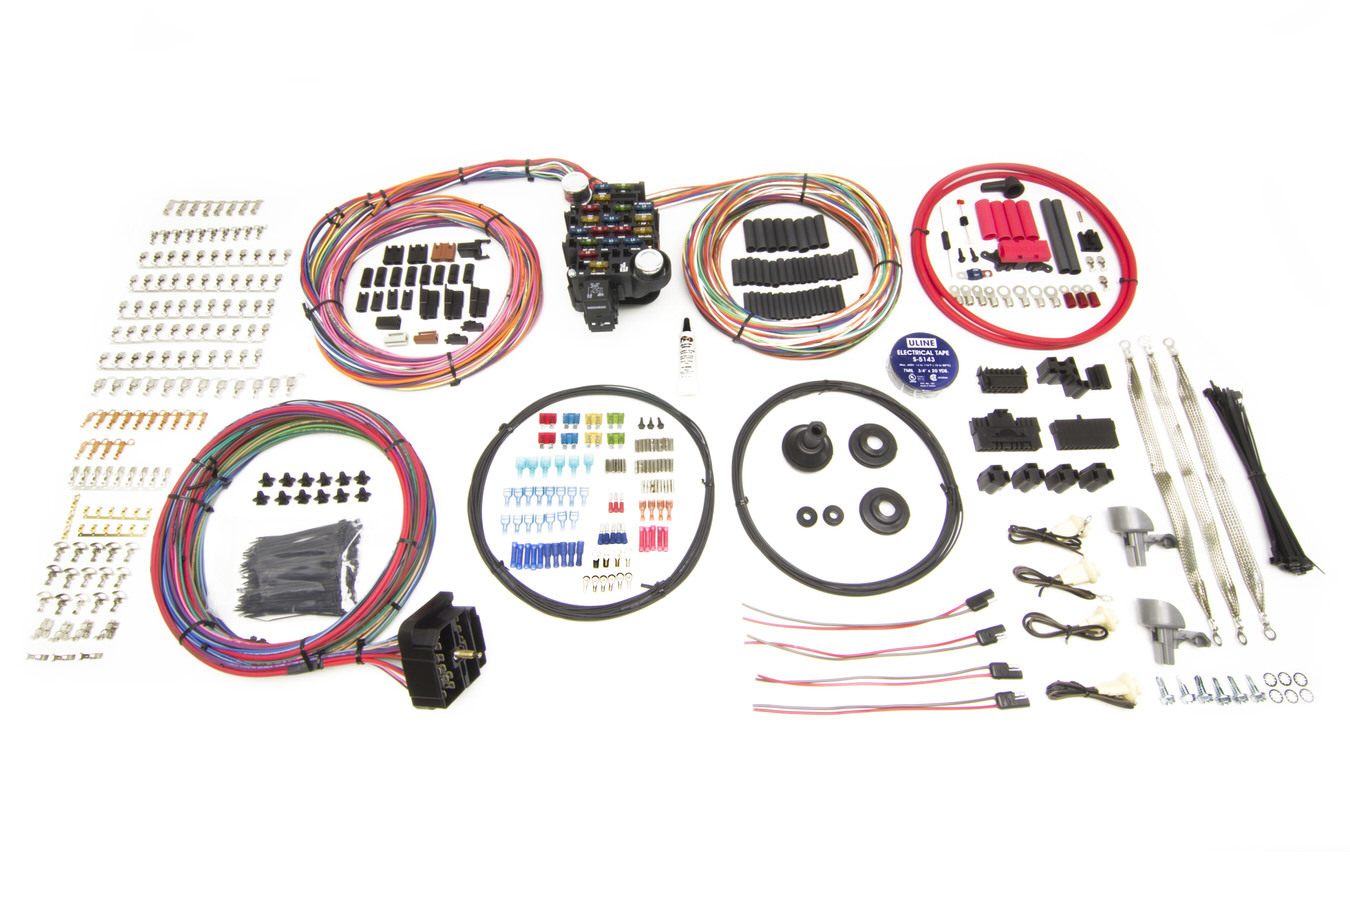 Painless Wiring 10414 Car Wiring Harness, Pro Series, Customizable, 25 Circuit, Bulkhead Firewall Pass-Through, In Dash Key, GM, Kit